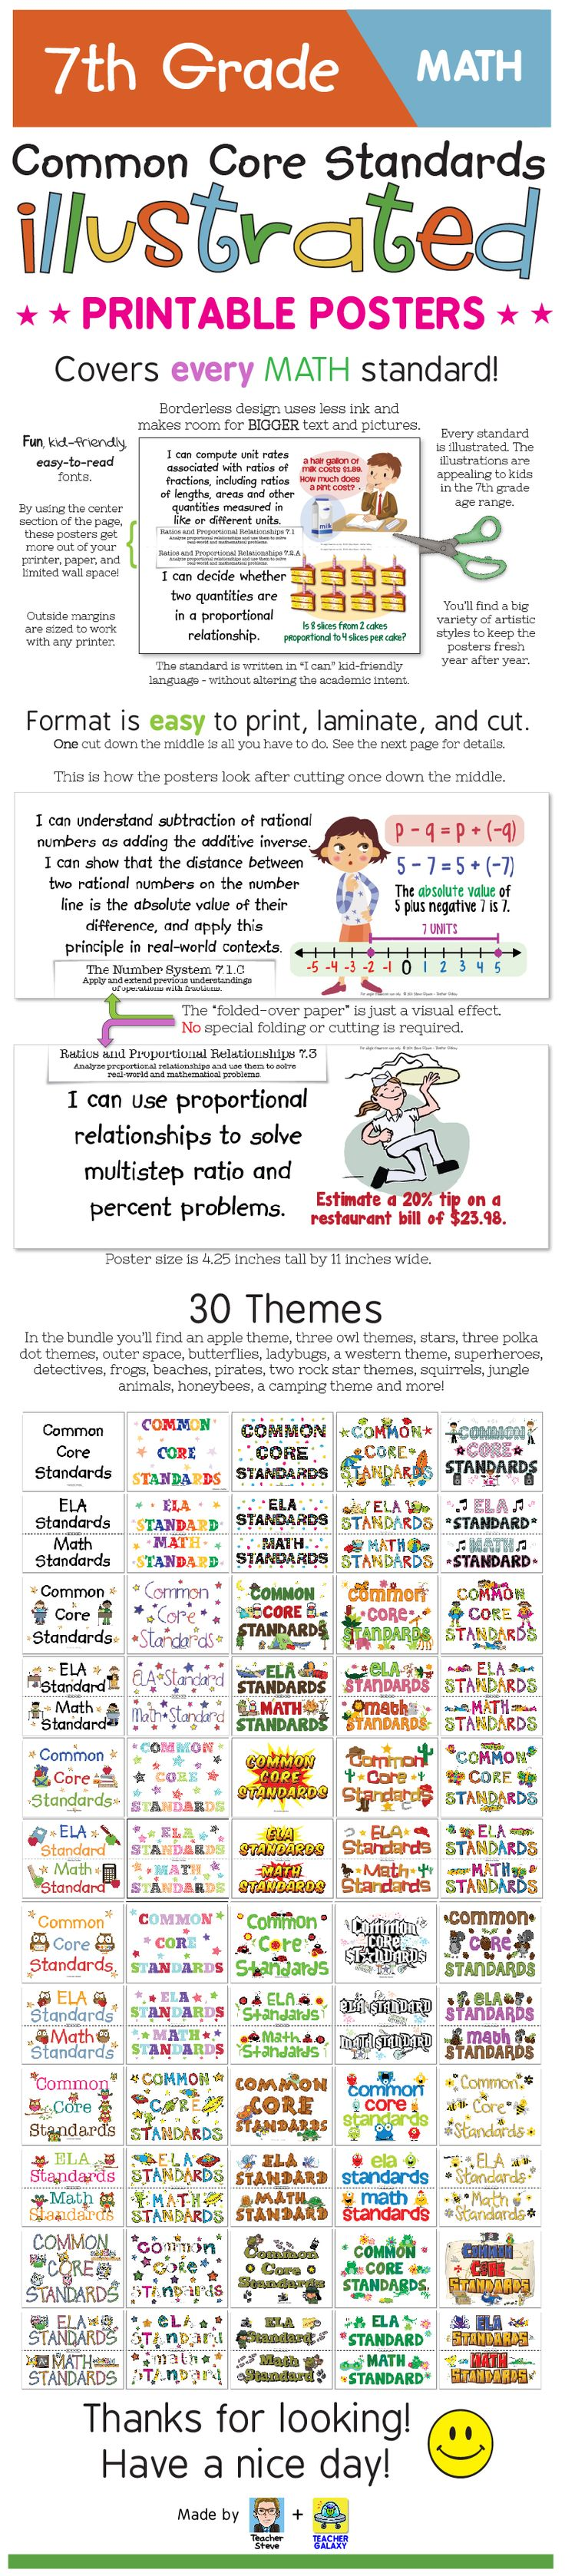 "Common Core Standards posters for 7th grade math. These posters bring the standard to life and make it easier to understand with age-appropriate illustrations and kid-friendly ""I can"" language. They also have a unique borderless design that will get the most out of your wall space and printer ink. Big, colorful, age-appropriate posters for the seventh grade ELA common core! I had a lot of fun making these. I hope you like 'em! $"